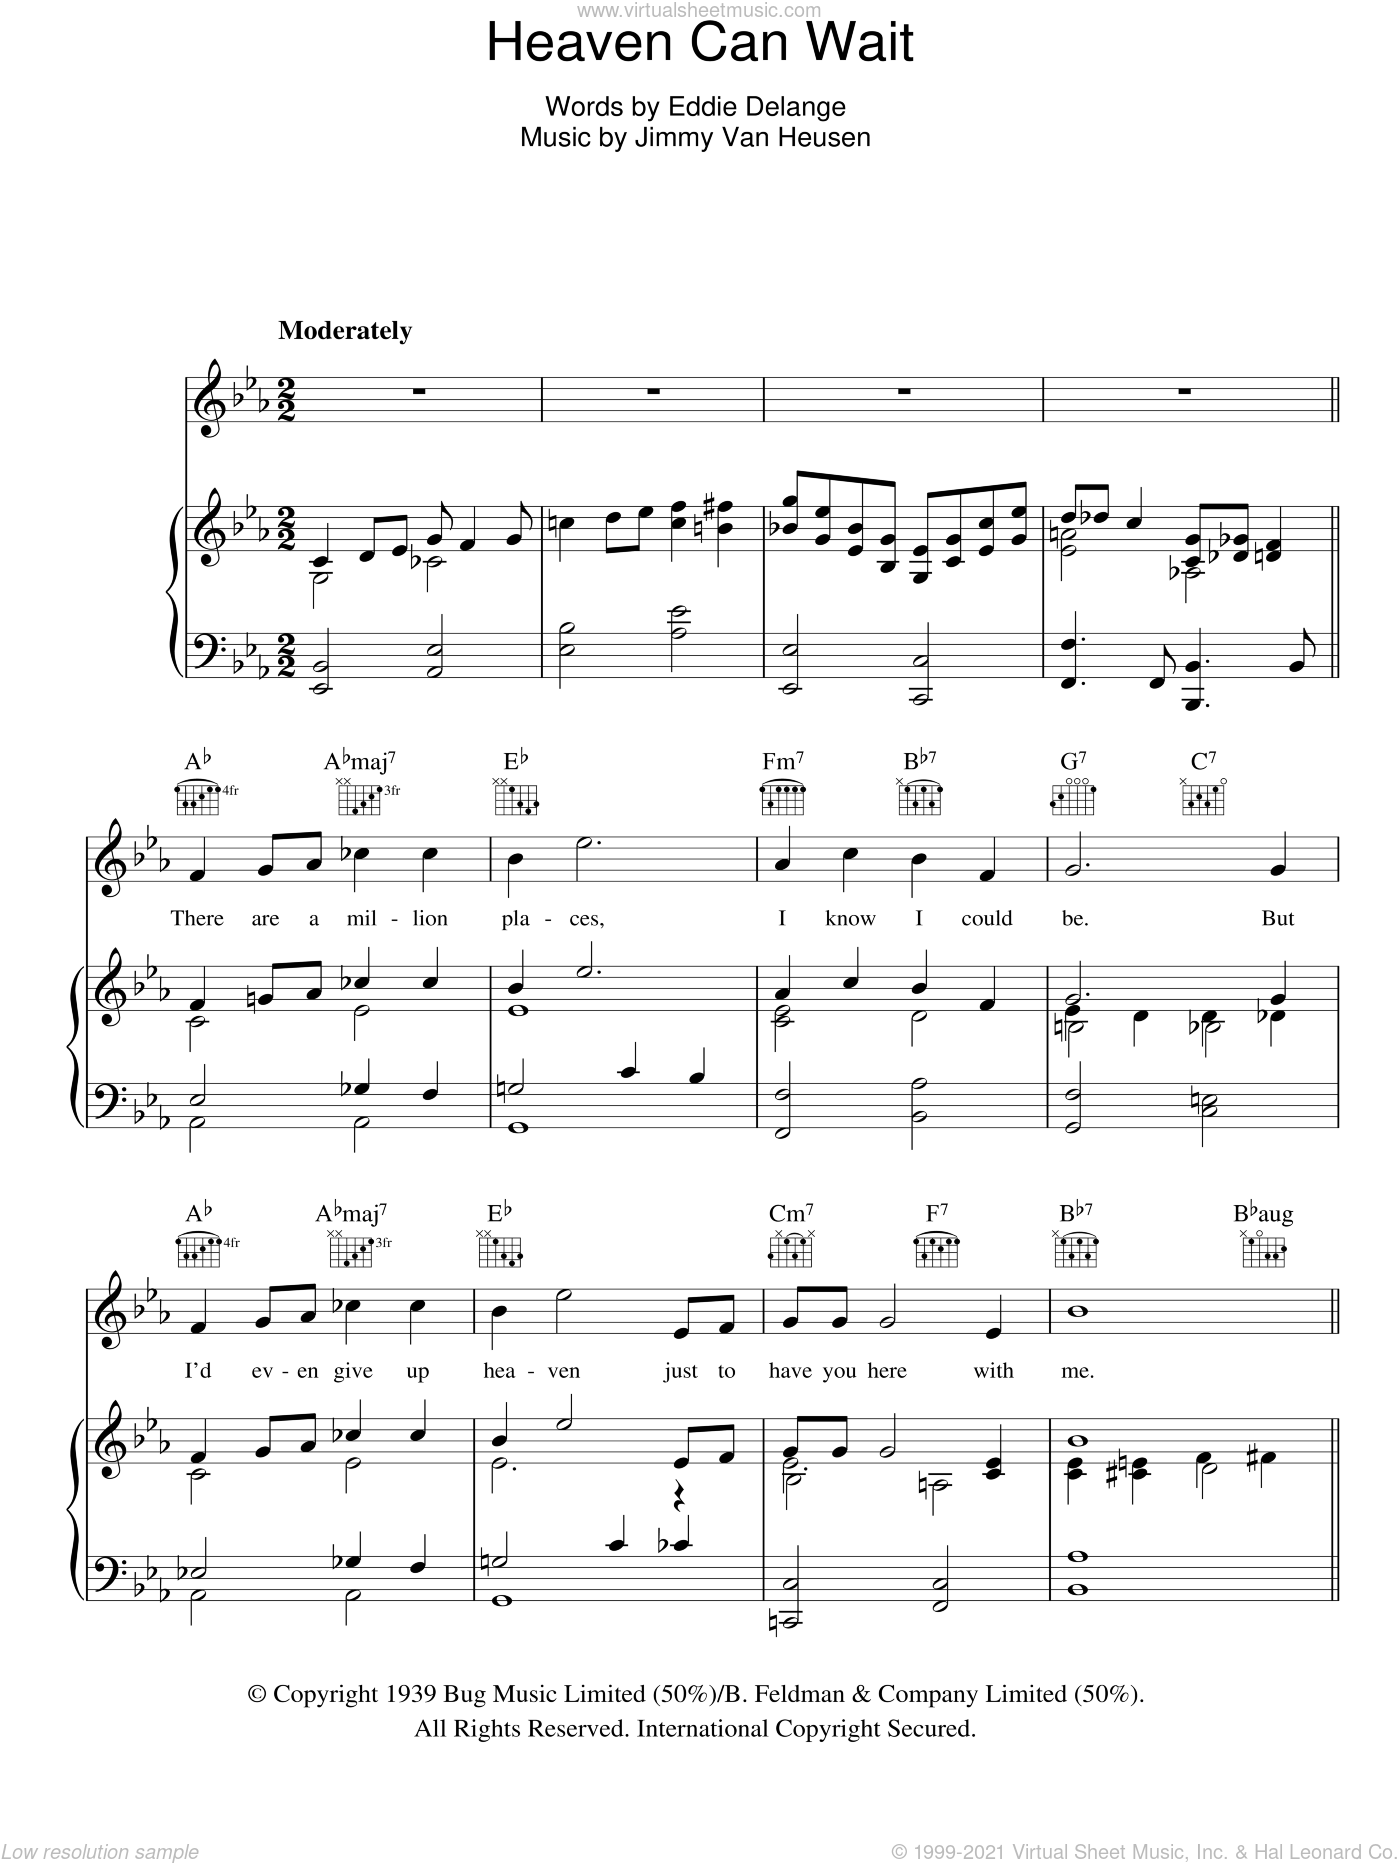 Heaven Can Wait sheet music for voice, piano or guitar by Glen Miller, Eddie DeLange and Jimmy Van Heusen, intermediate voice, piano or guitar. Score Image Preview.